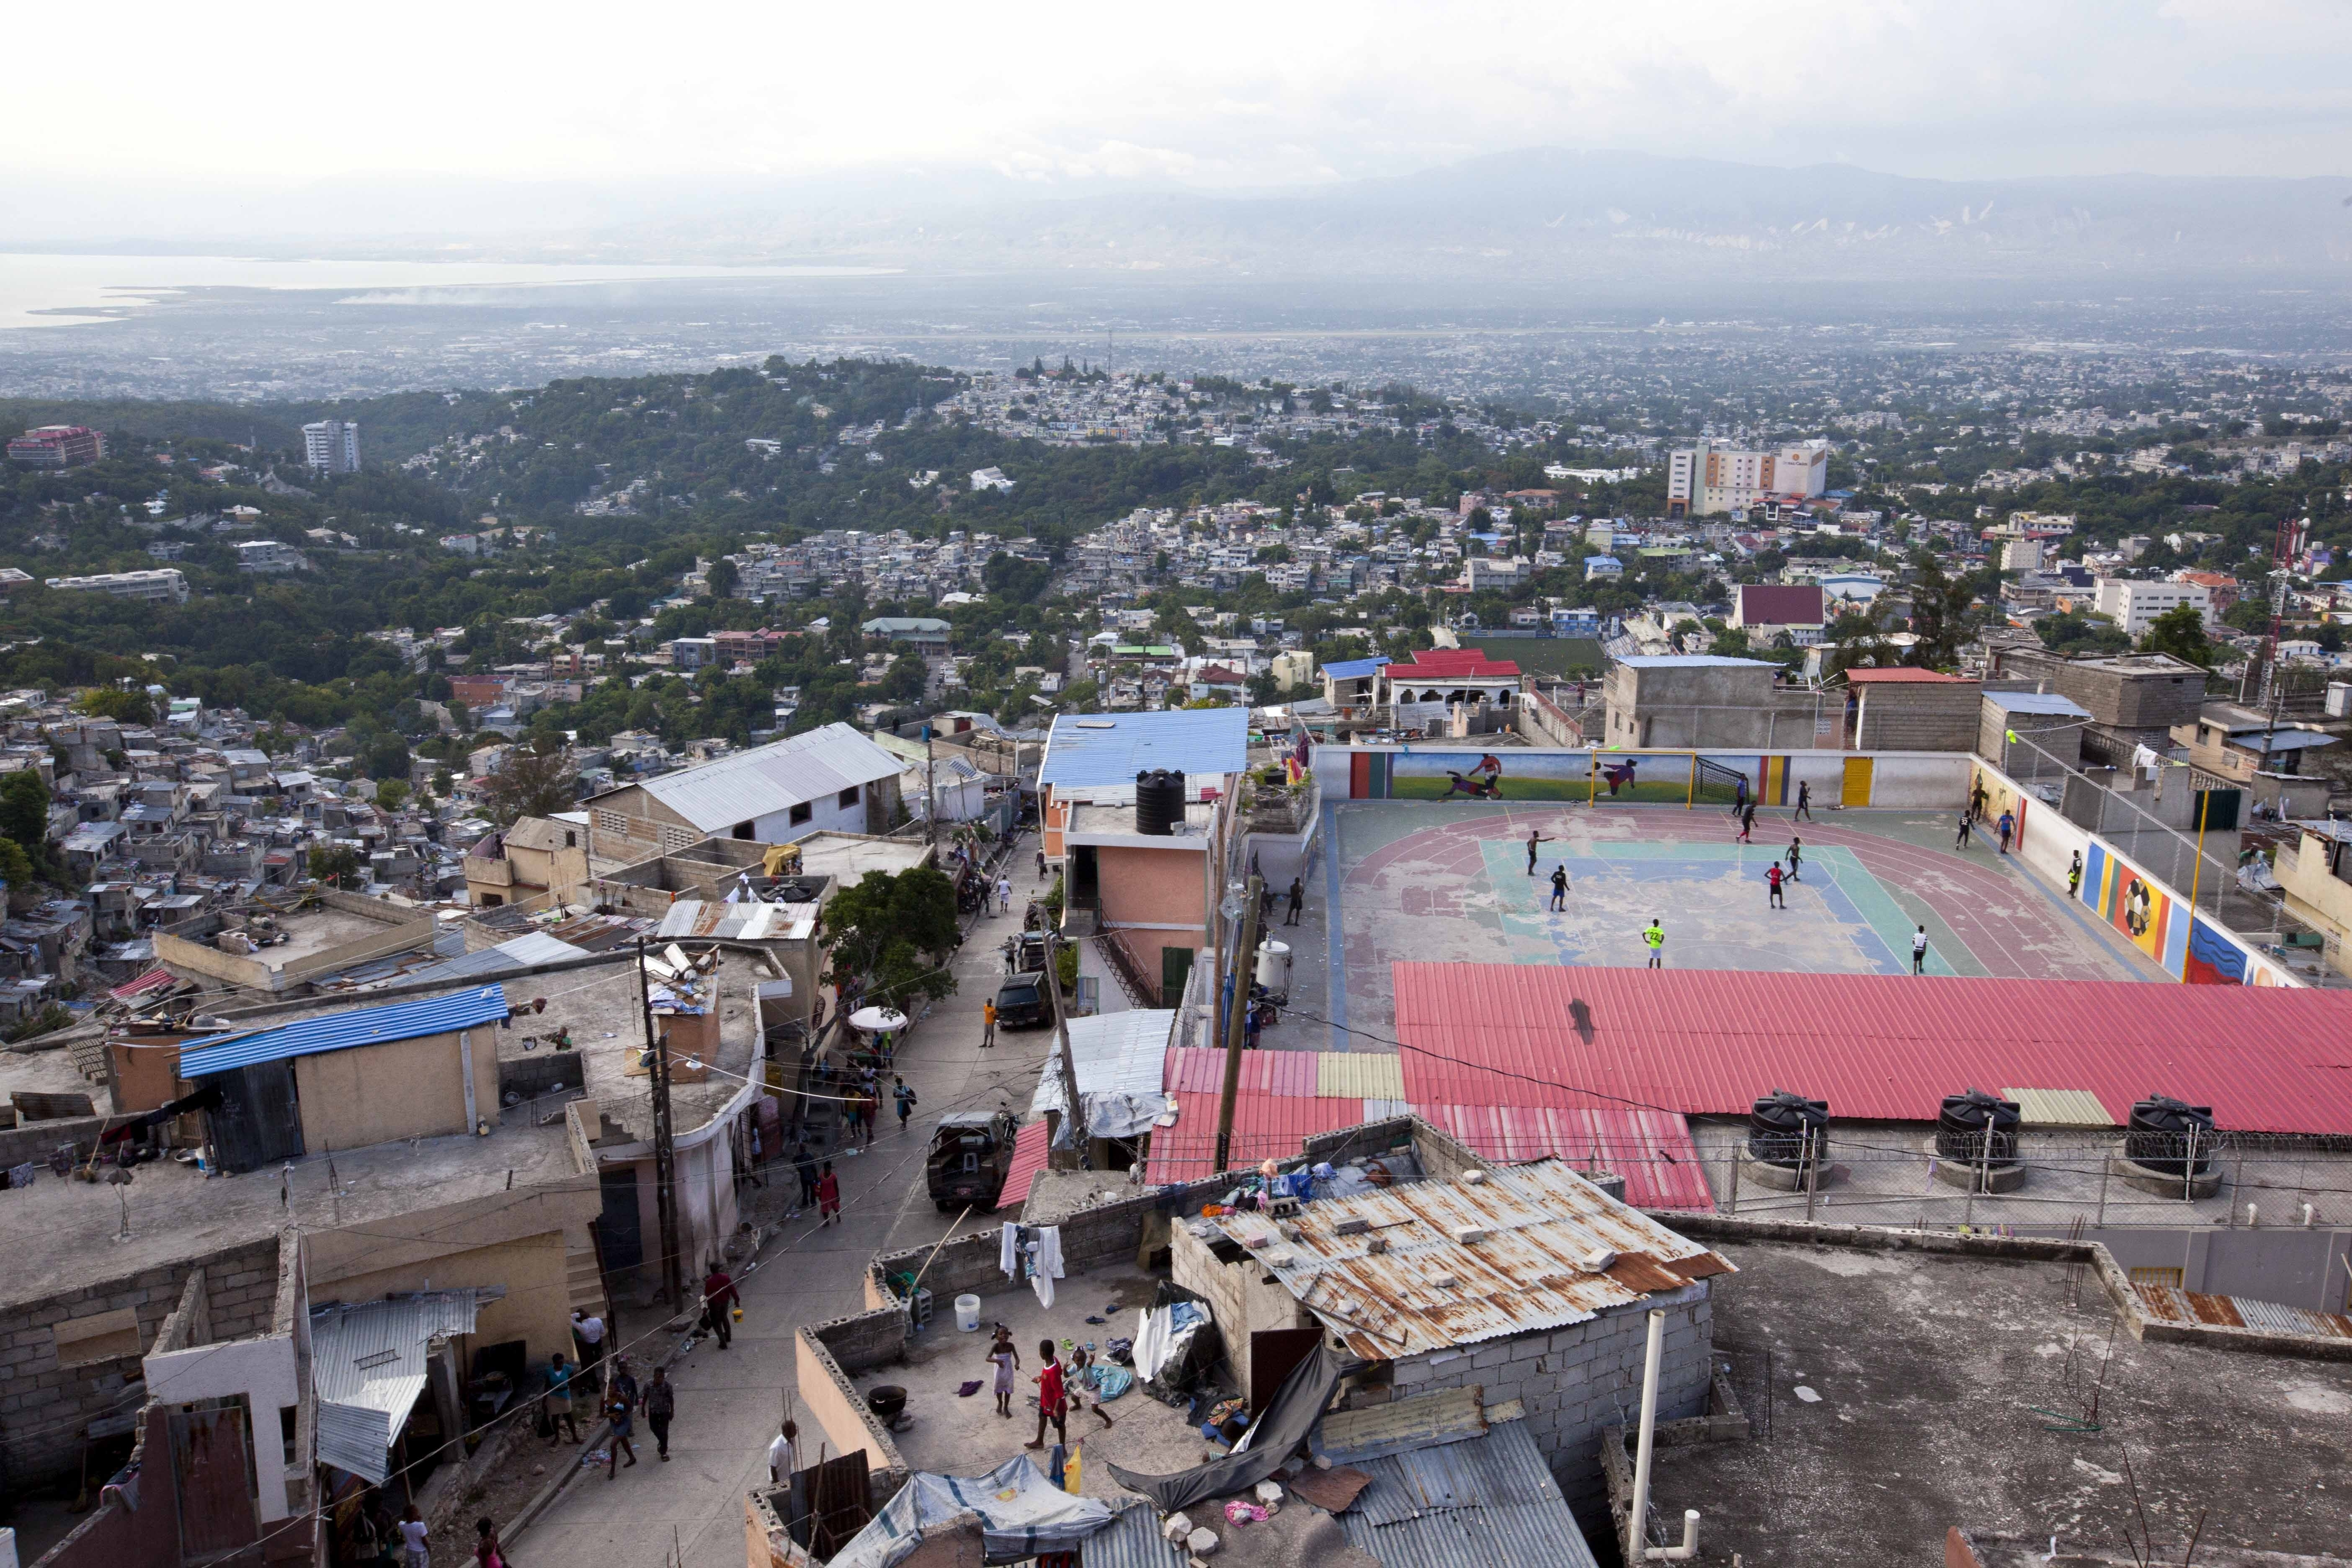 "<div class=""meta image-caption""><div class=""origin-logo origin-image none""><span>none</span></div><span class=""caption-text"">Residents play soccer on top of a hillside neighborhood in the Jalousie district of Port-au-Prince, Haiti. (AP)</span></div>"